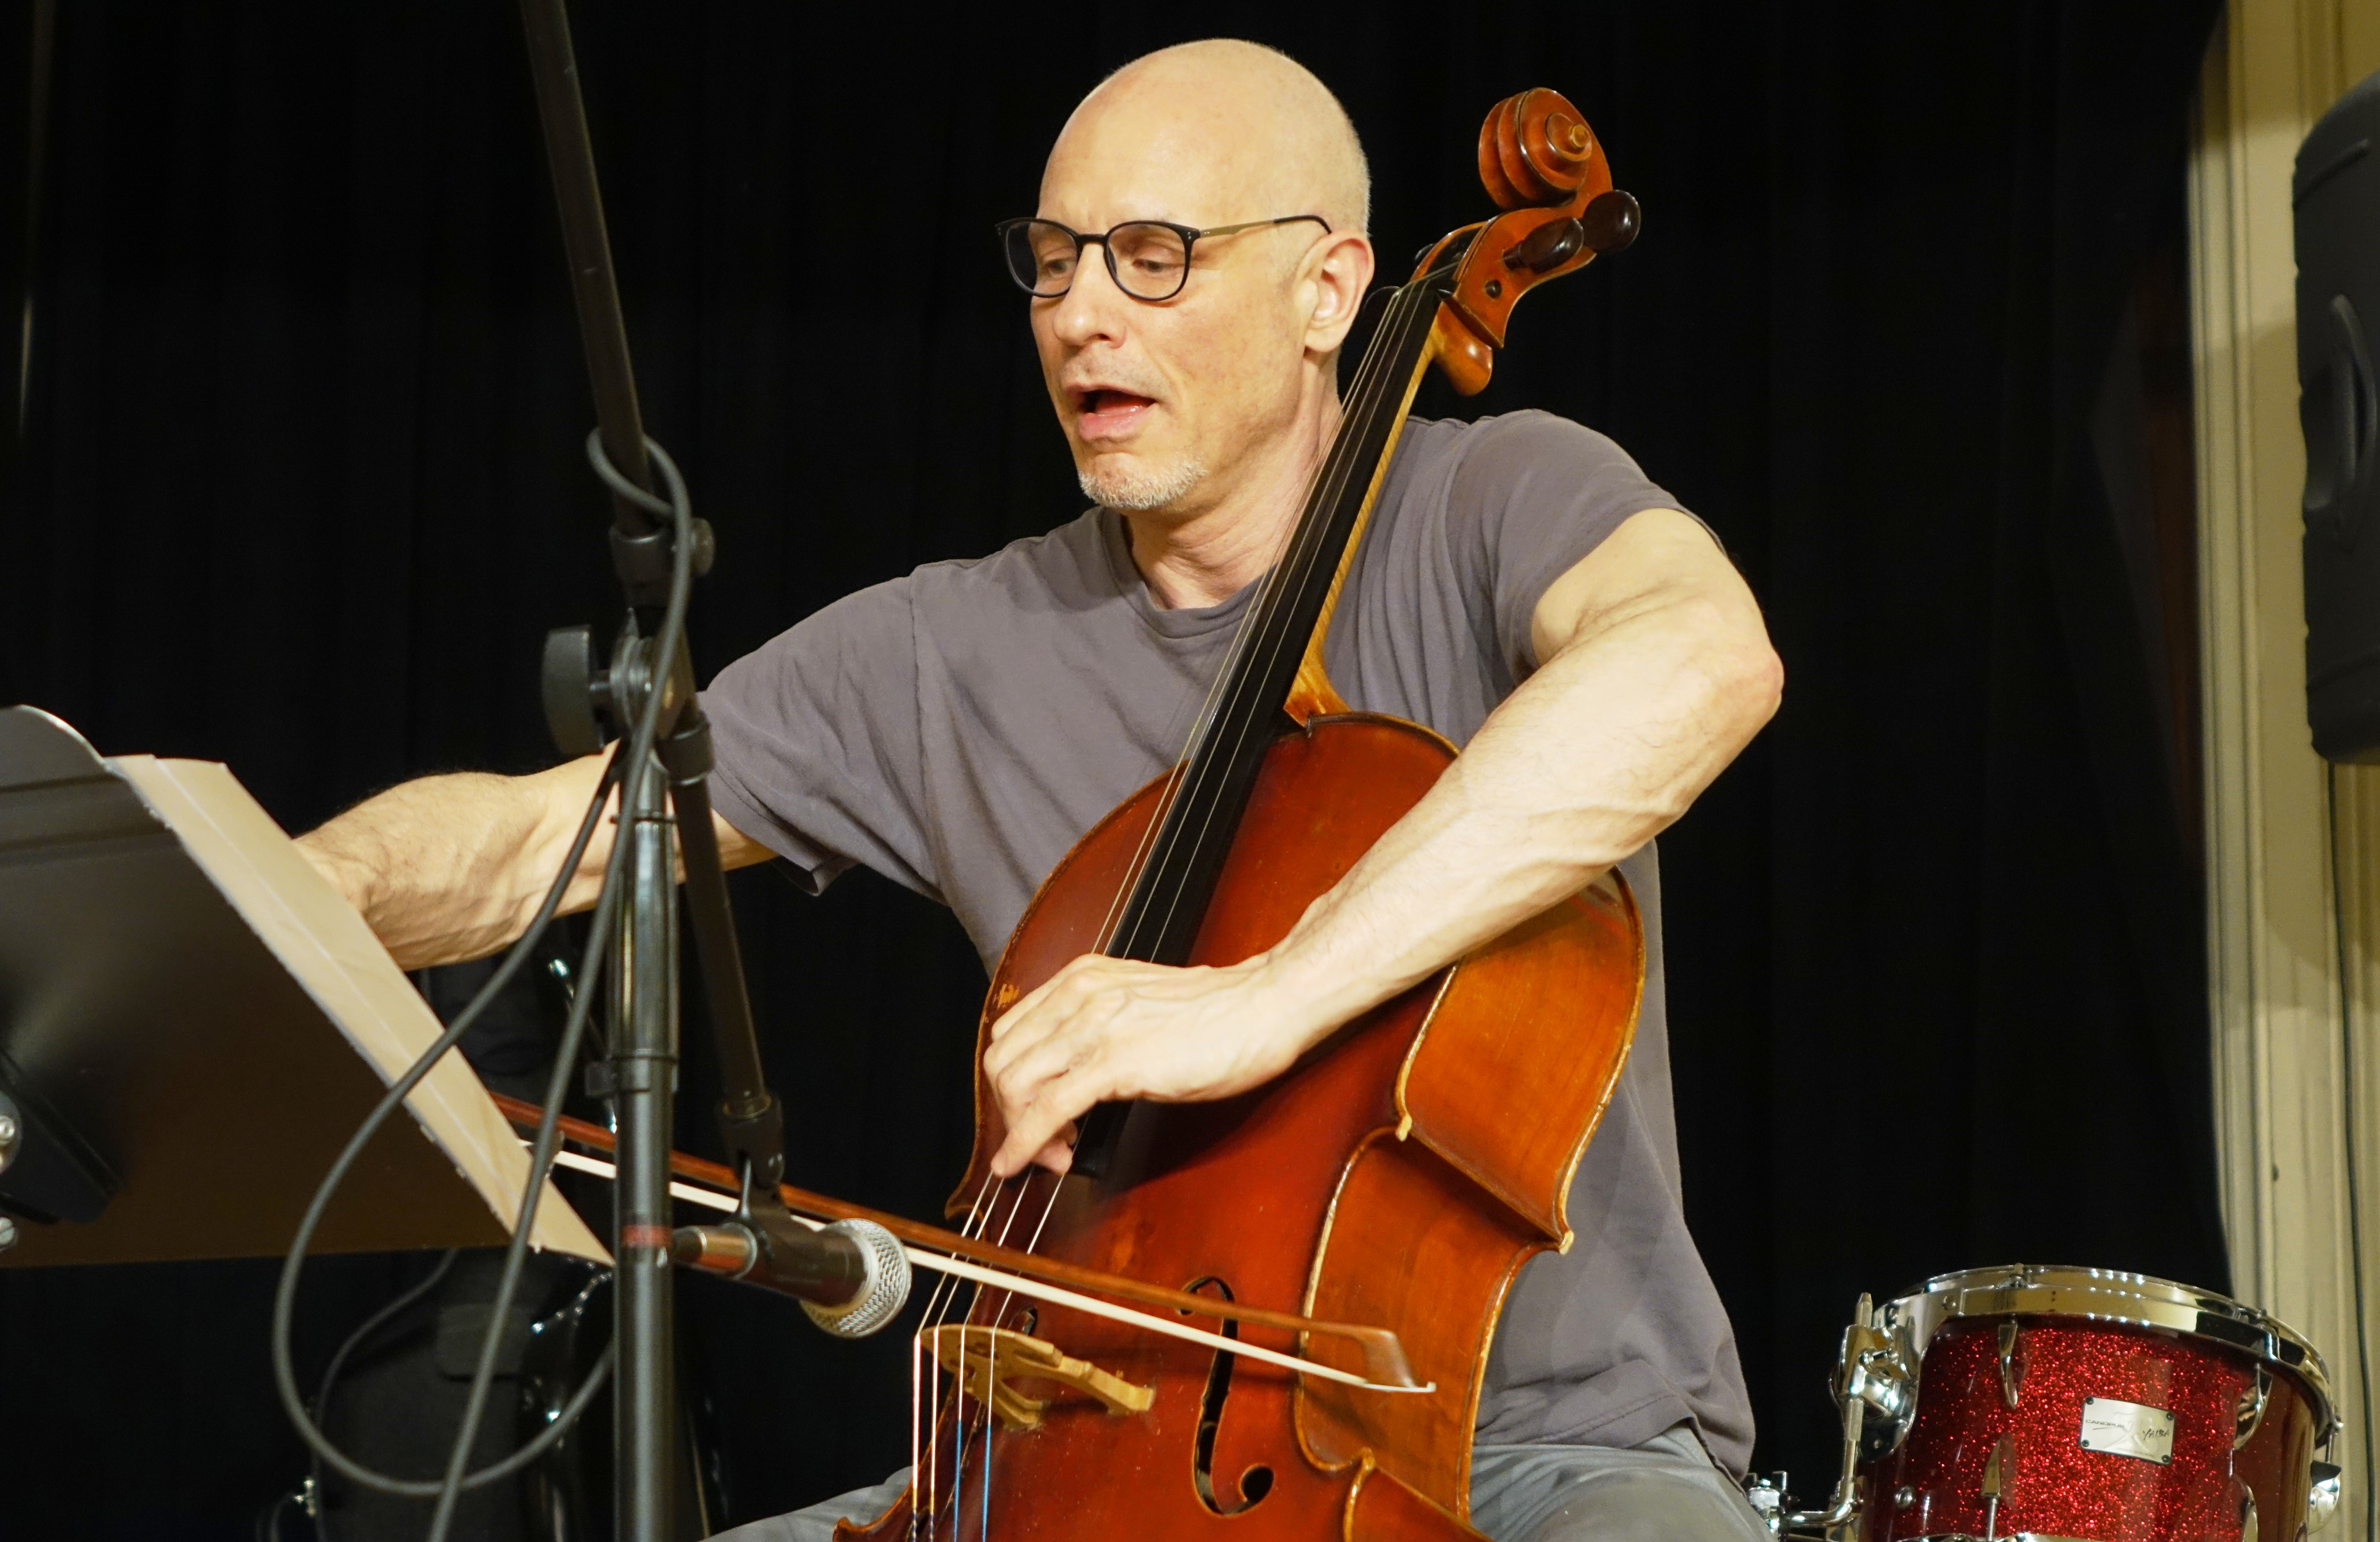 Erik Friedlander at the Brooklyn Conservatory of Music in May 2018